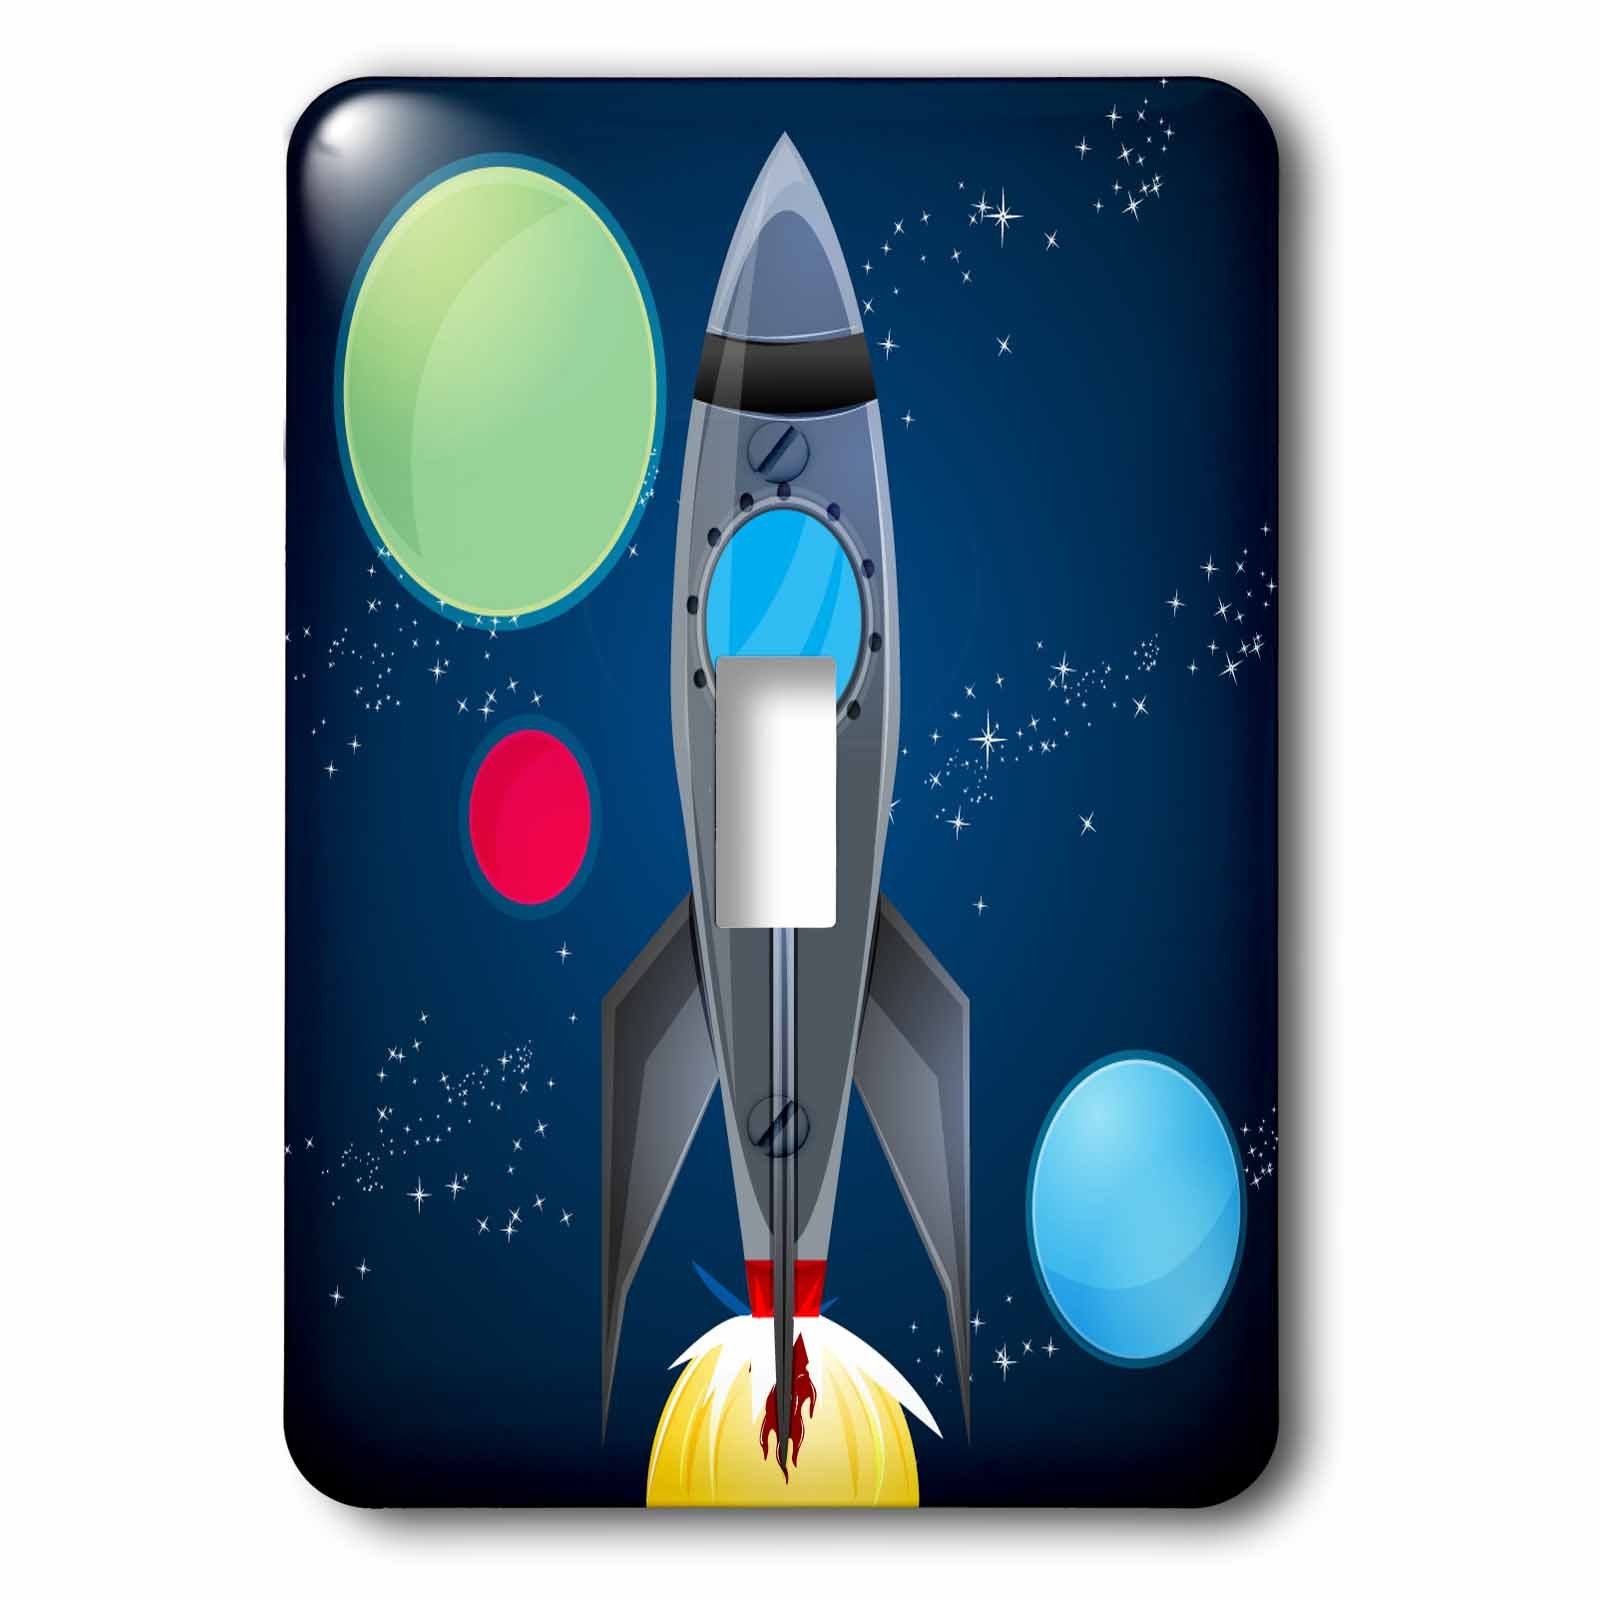 3dRose LLC lsp_111577_1 Boys Rocket Ship with Planets Design On A Dark Blue Background Single Toggle Switch